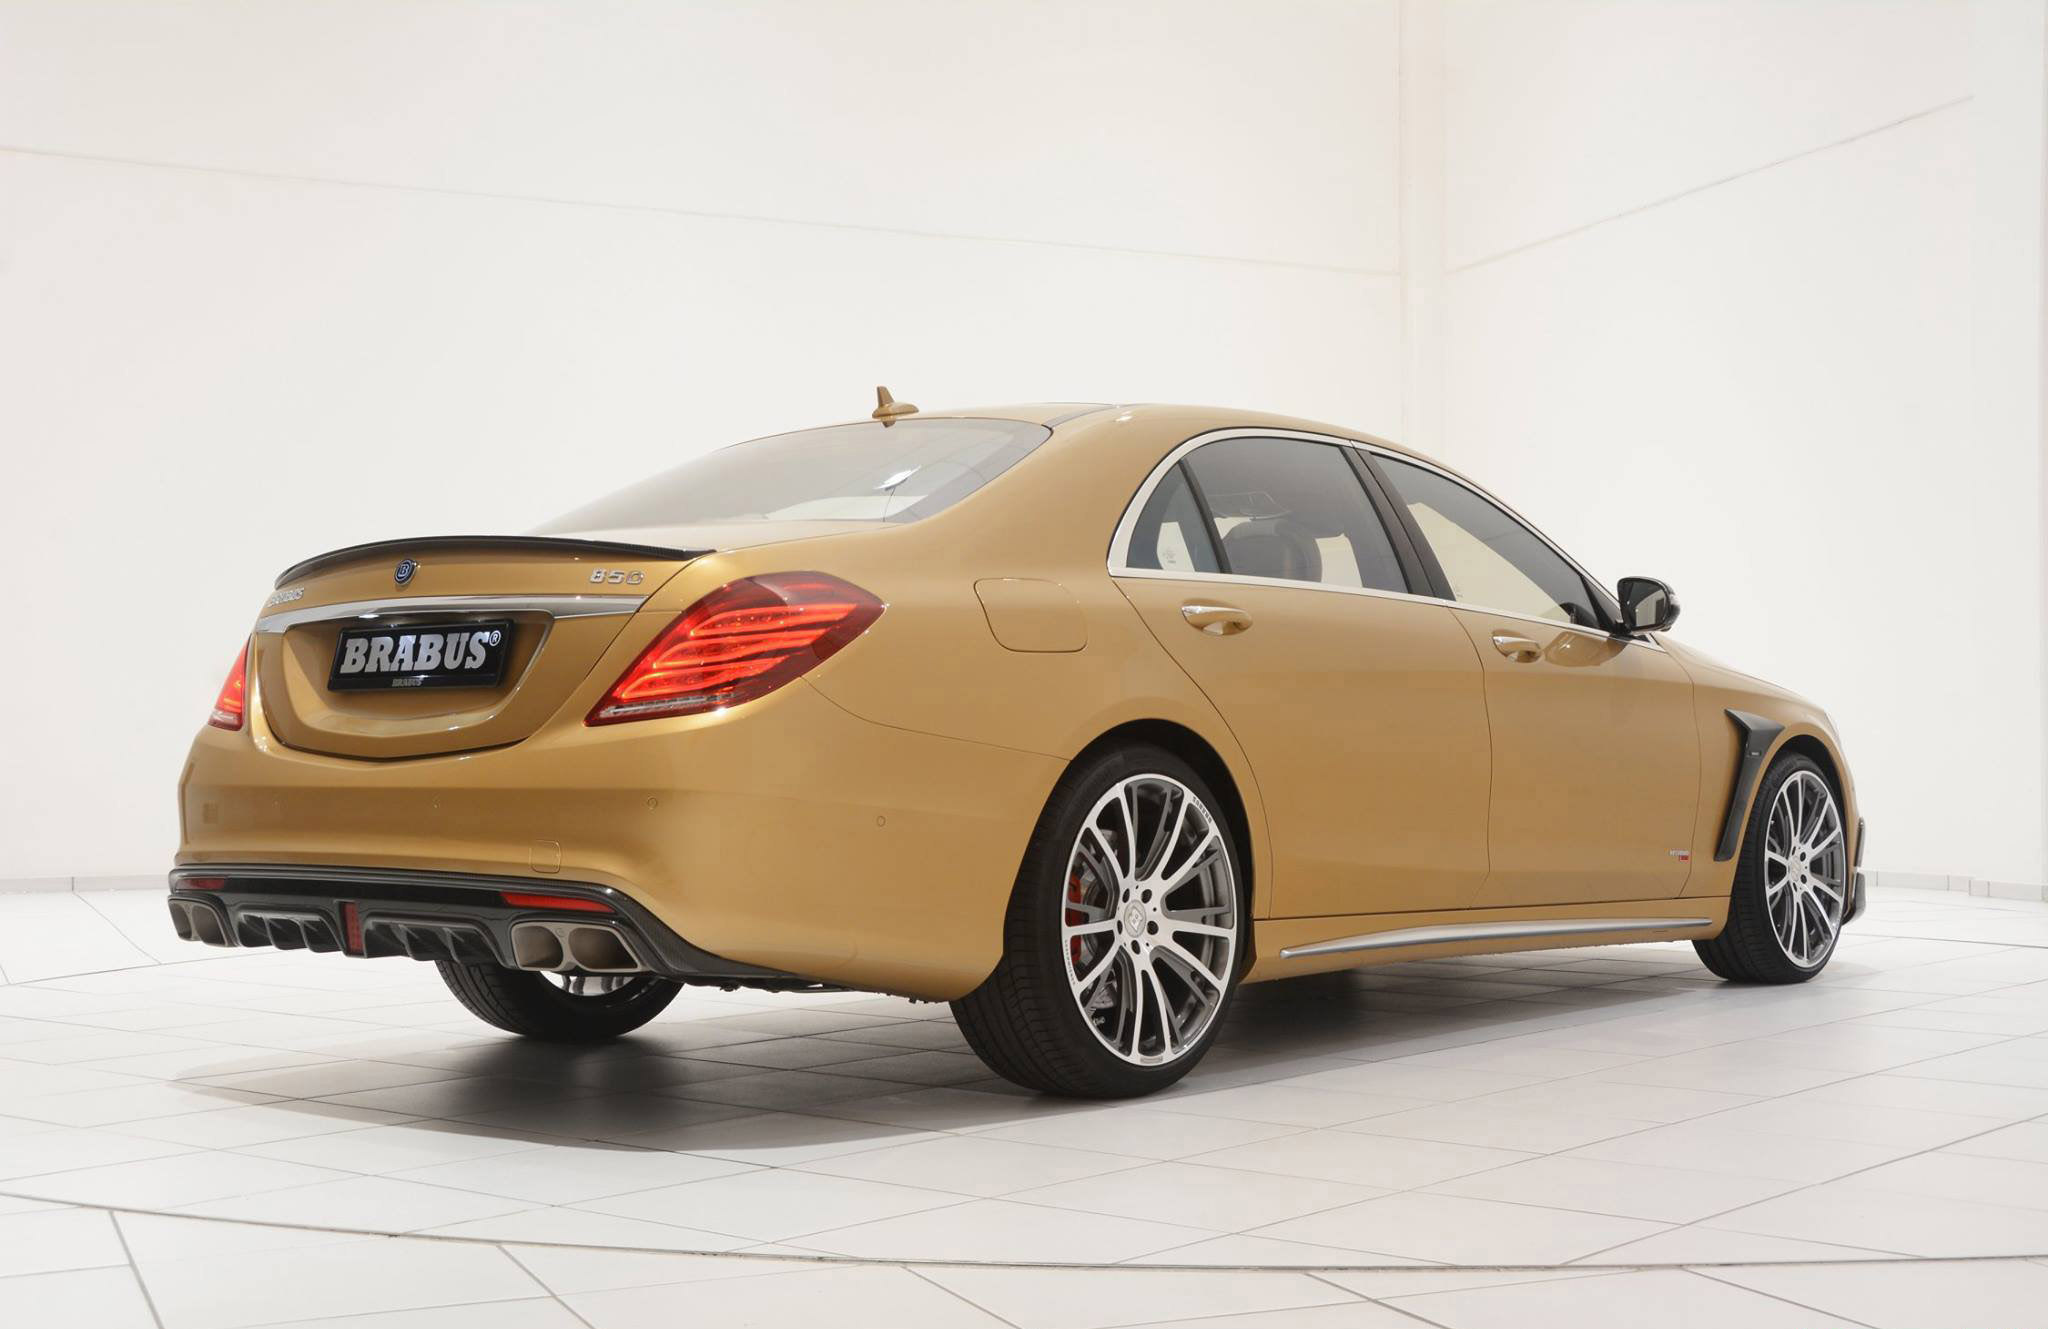 Mercedes benz s63 amg reworked by brabus for 2014 mercedes benz s63 amg for sale